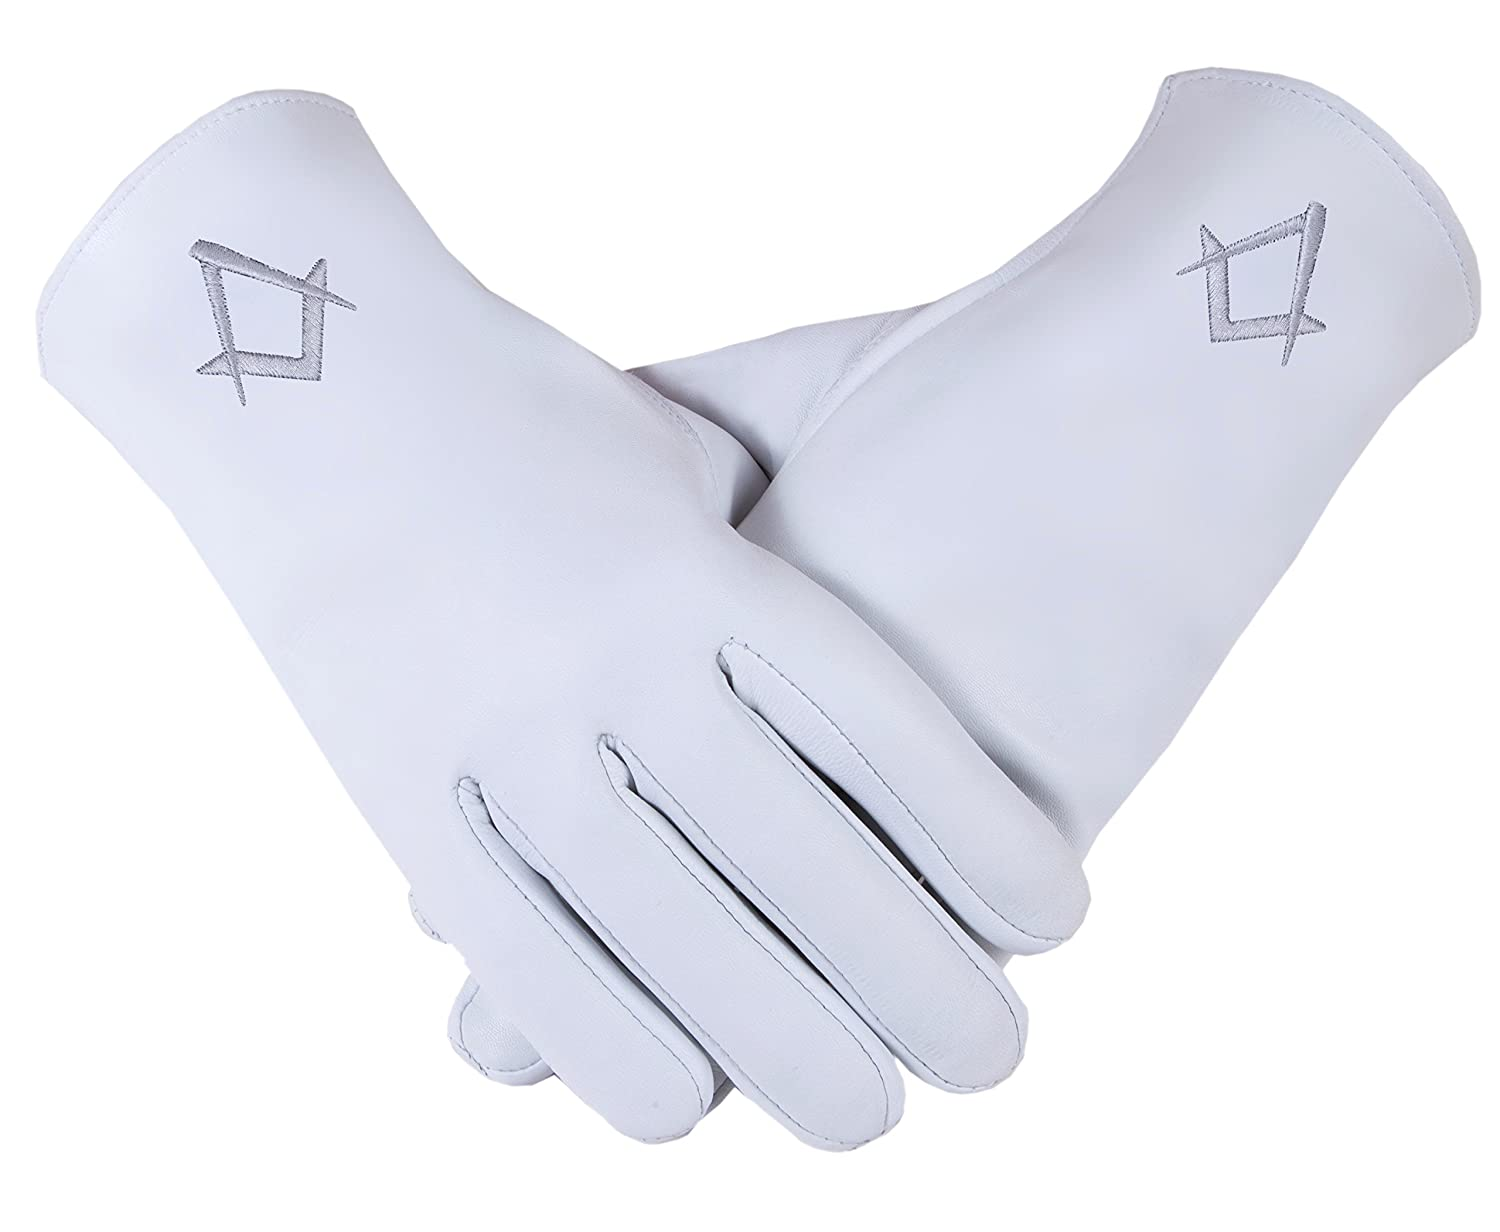 Freemasons Masonic Leather Gloves in Silver Embroidered S& C